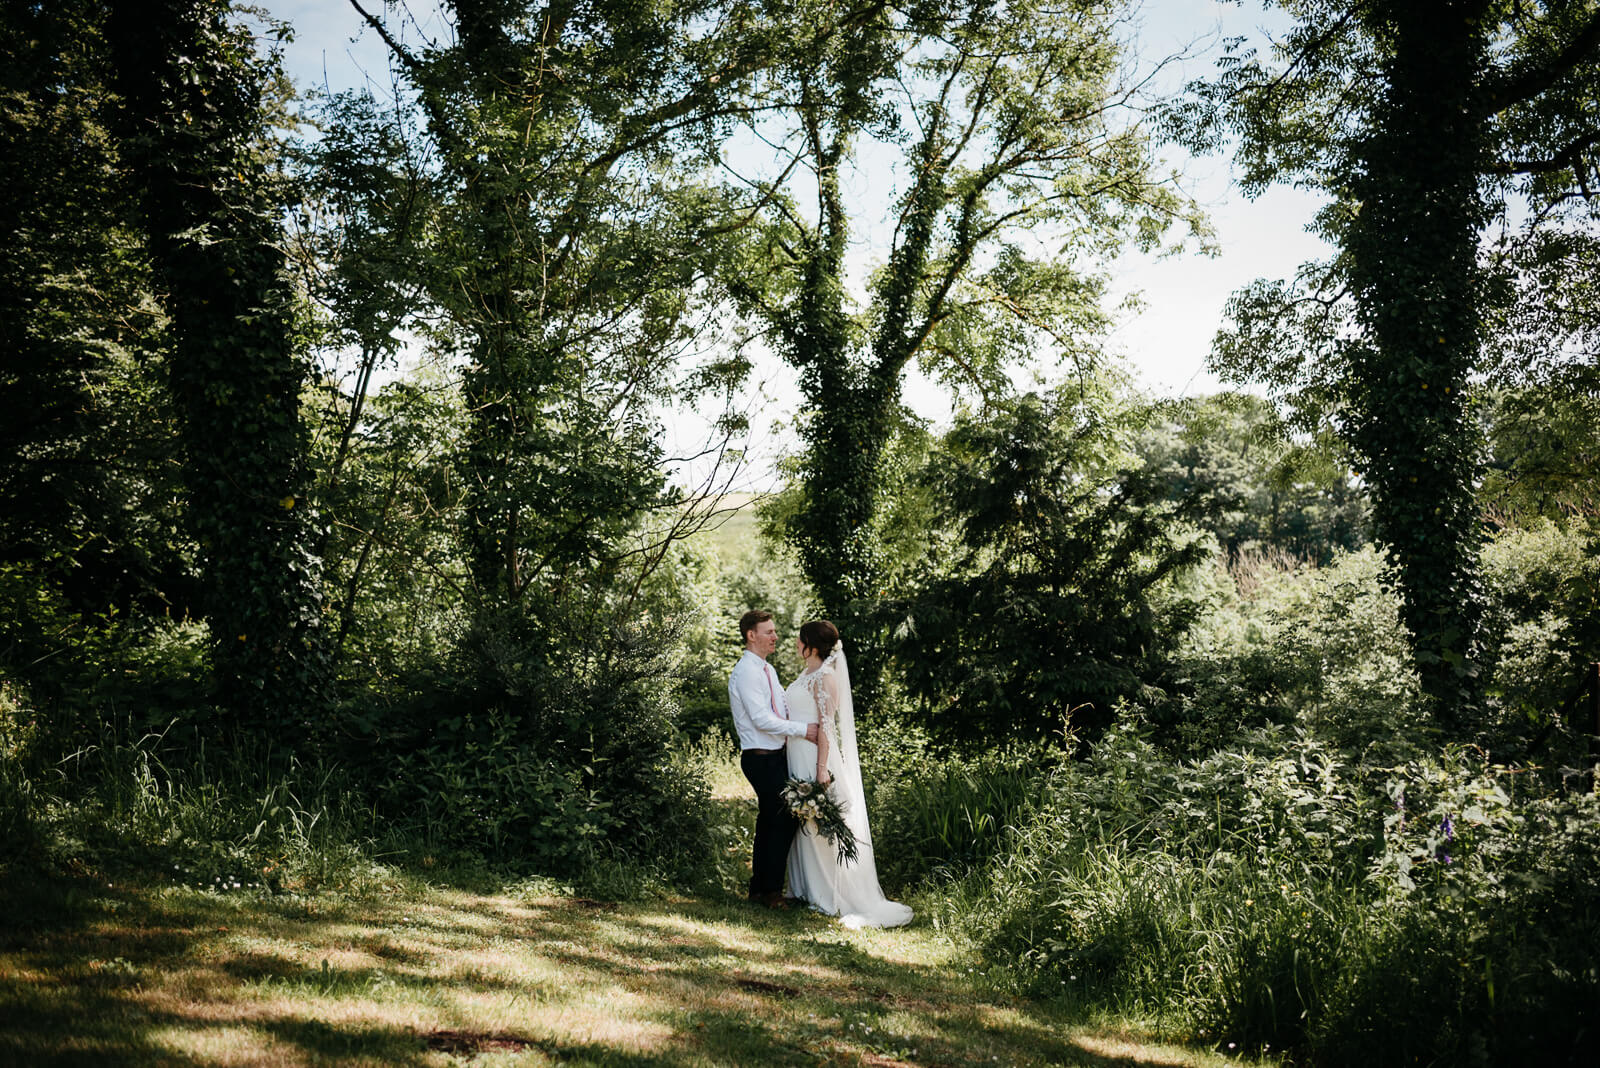 Summer wedding at Broadway House Hotel in Laugharne, Carmarthenshire